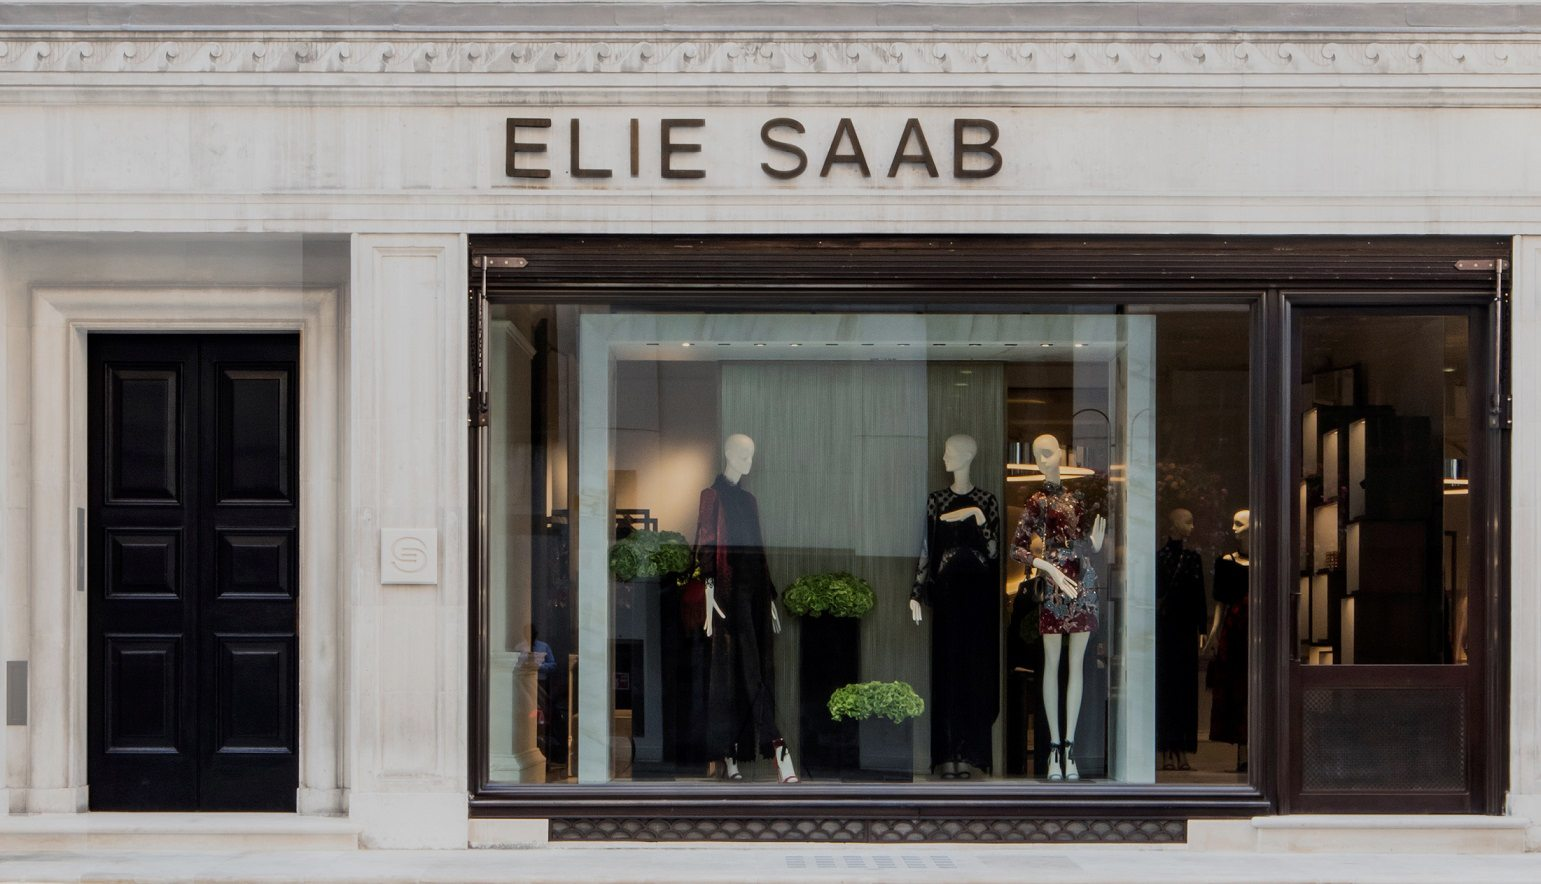 ELIE SAAB FLAGSHIP STORE IN LONDON